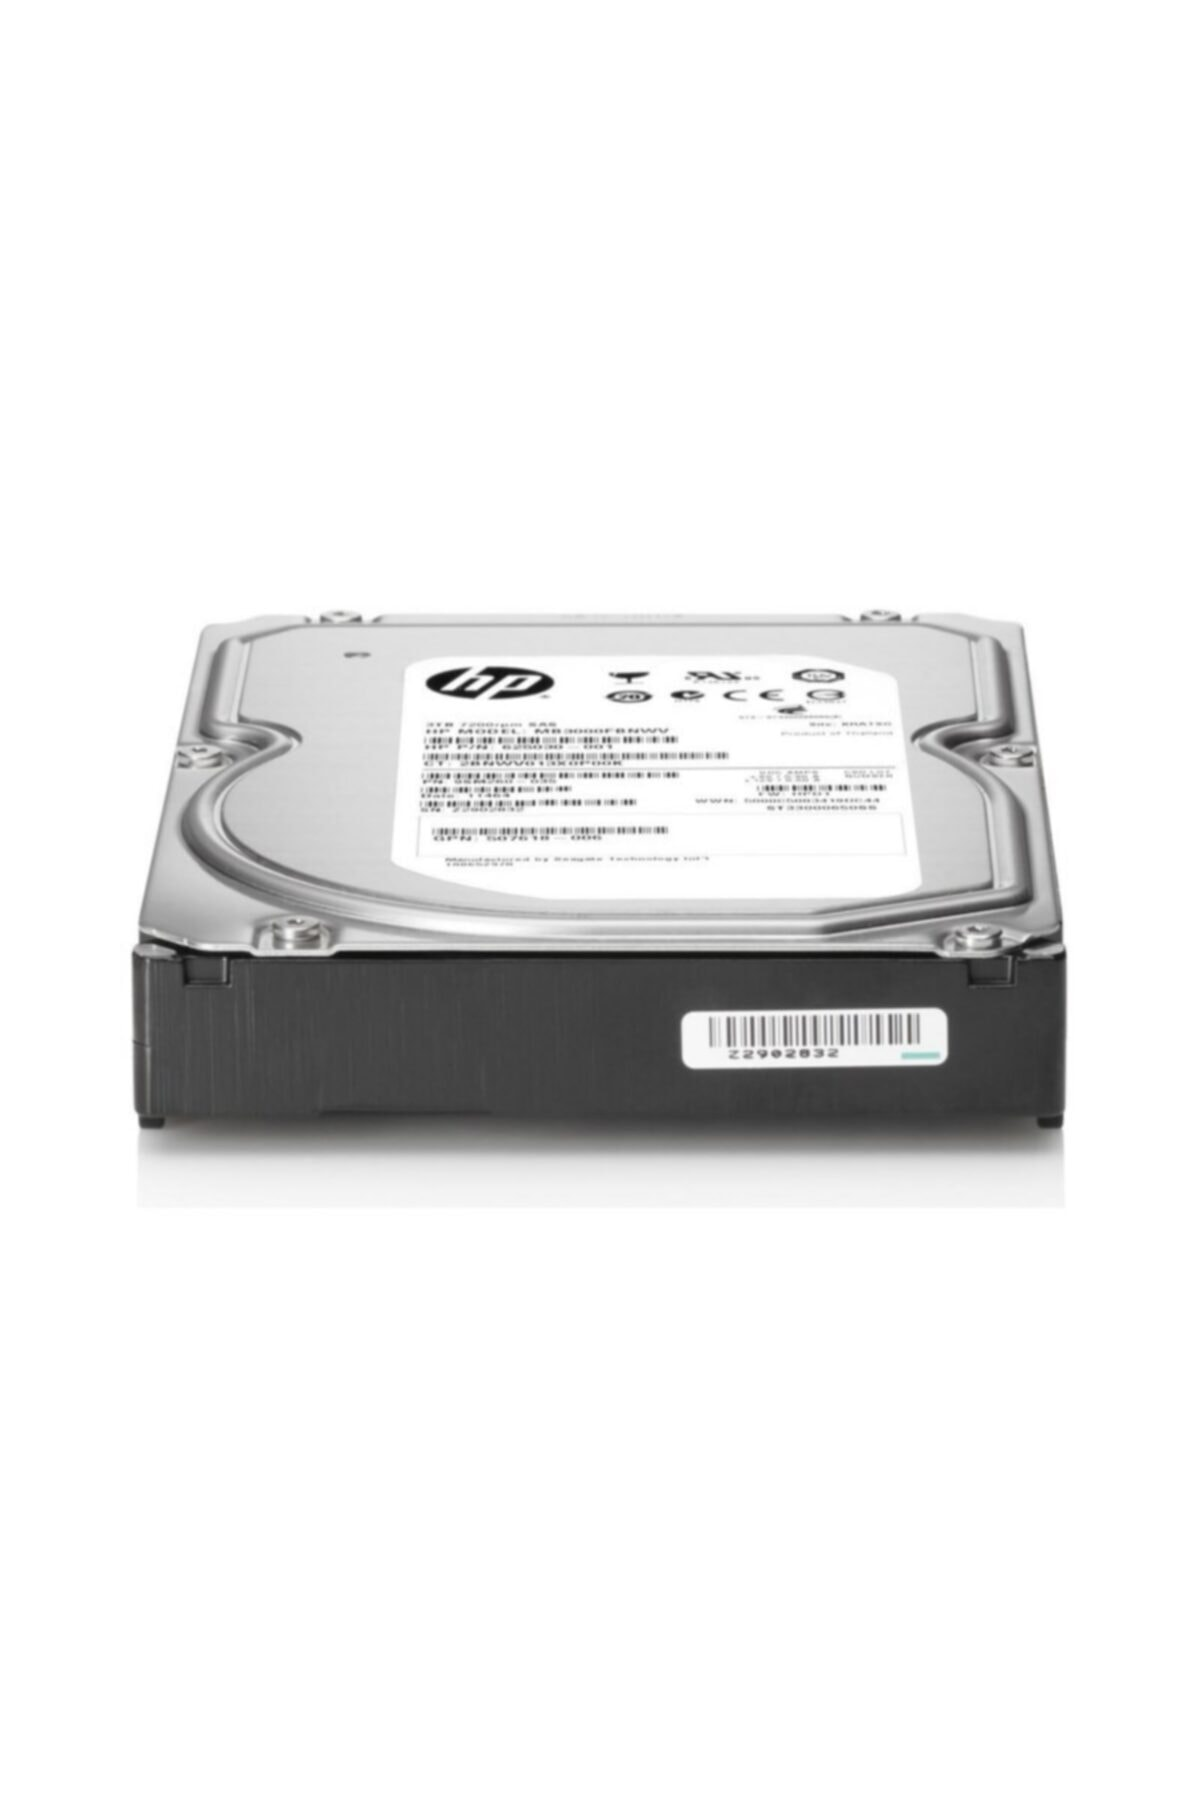 Hp 843266-b21 1tb Sata 7.2k Lff 3.5'' Non-hot Hdd